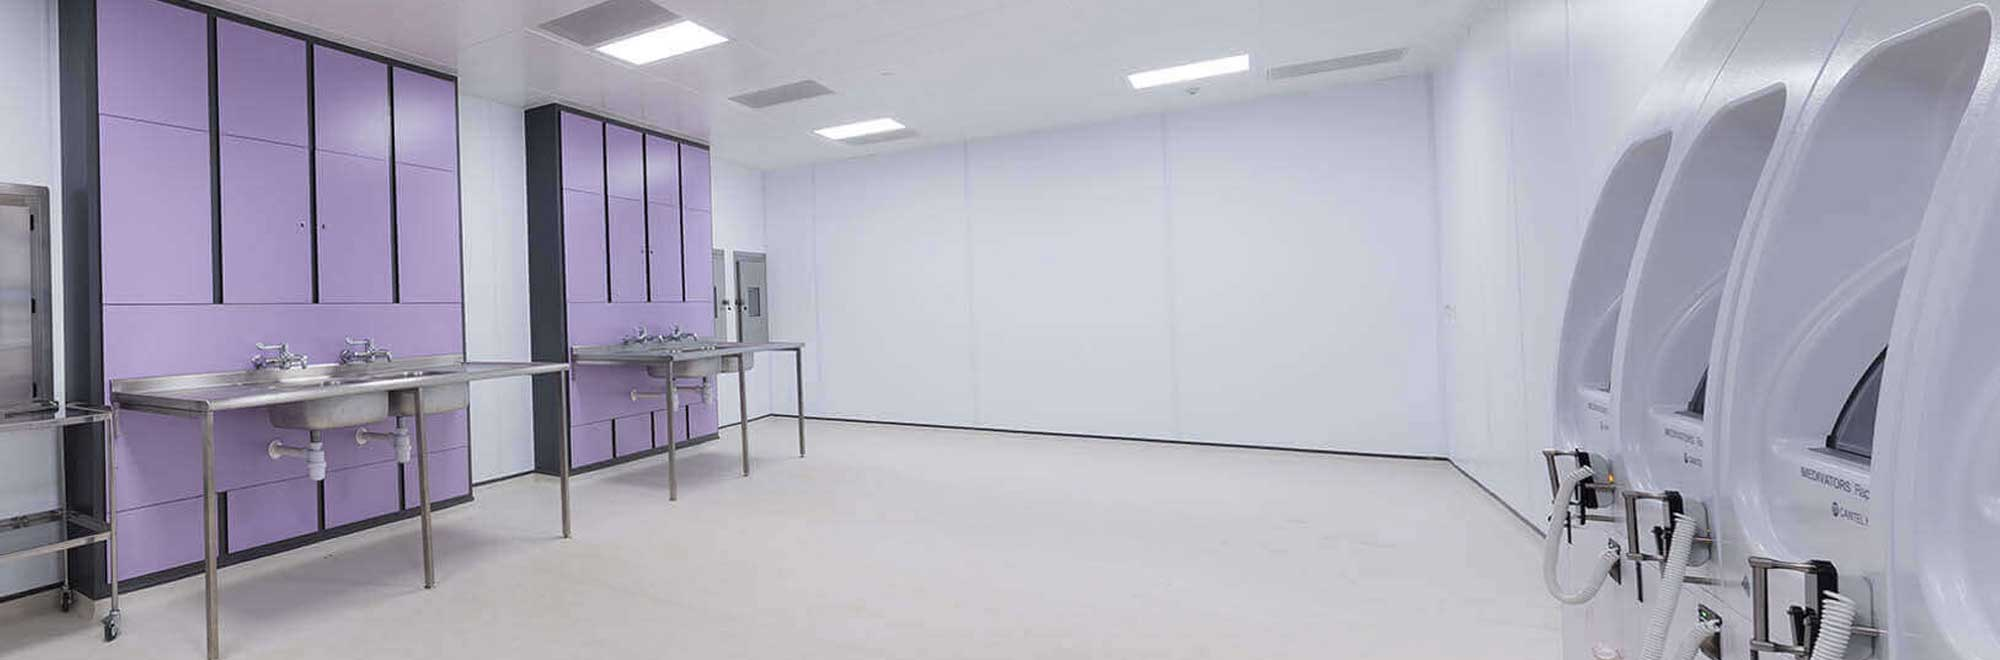 George Eliot hospital new endoscopy unit